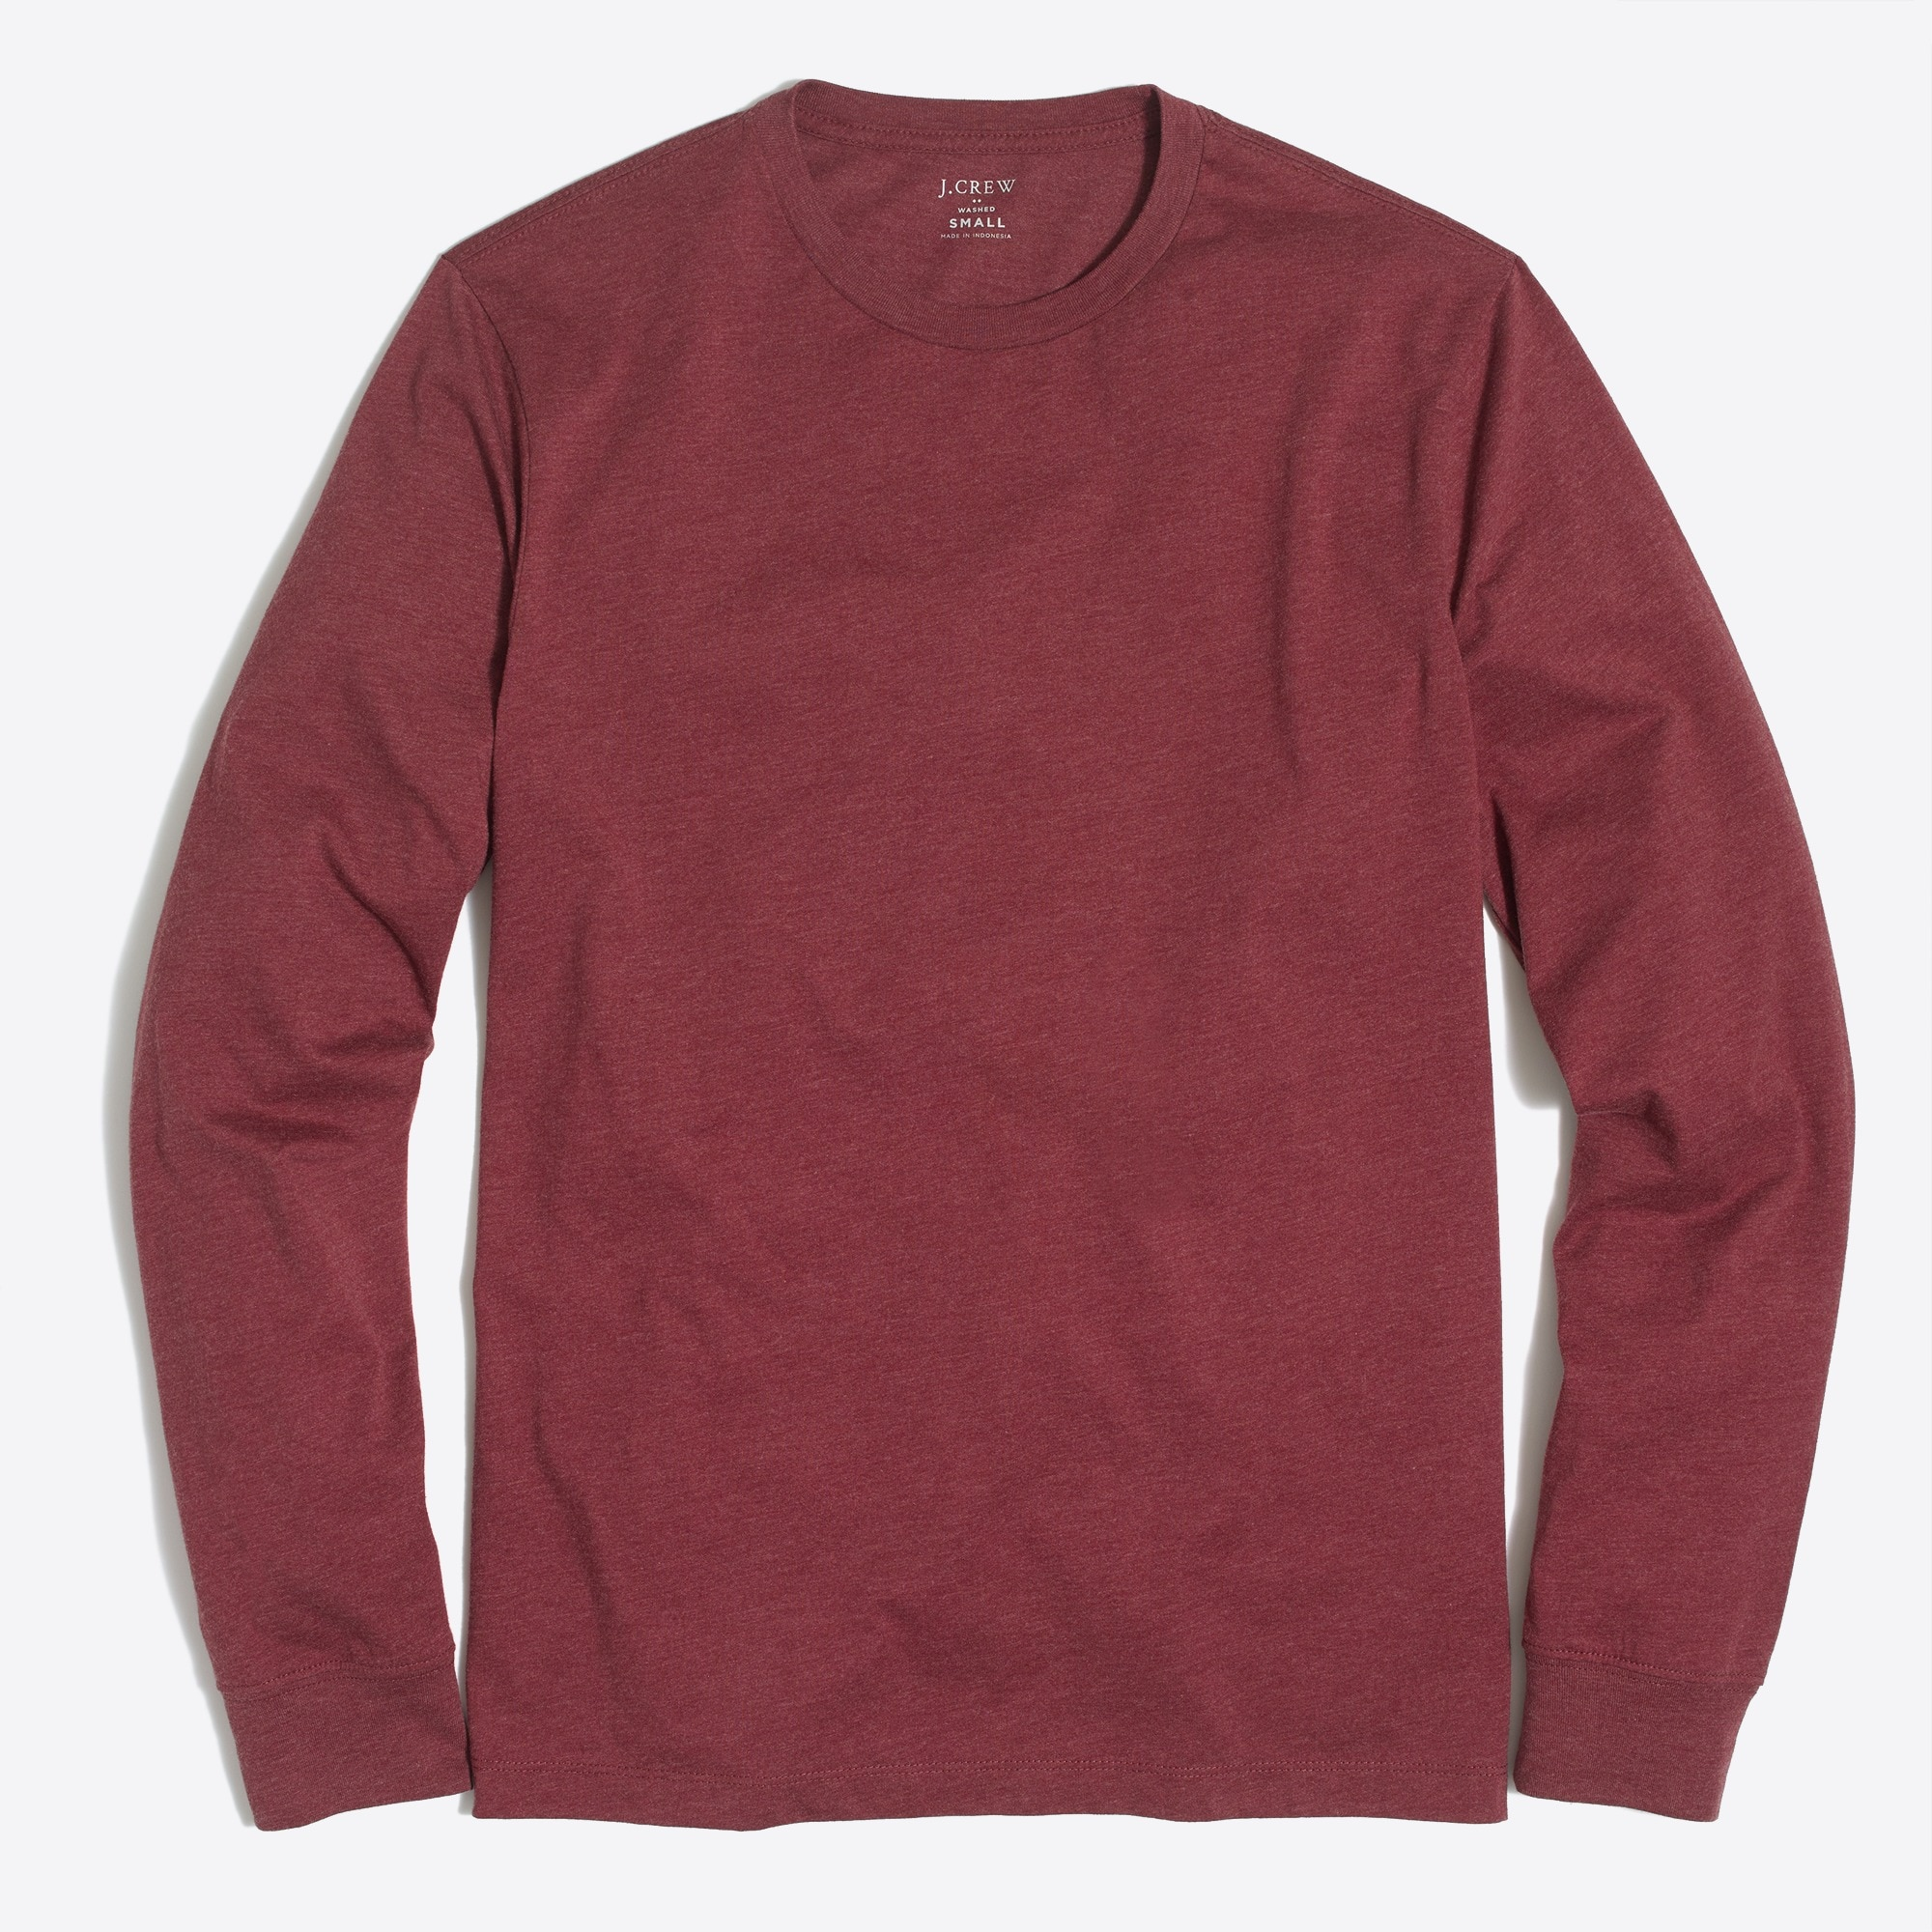 Image 1 for J. Crew Mercantile Heathered long-sleeve T-shirt